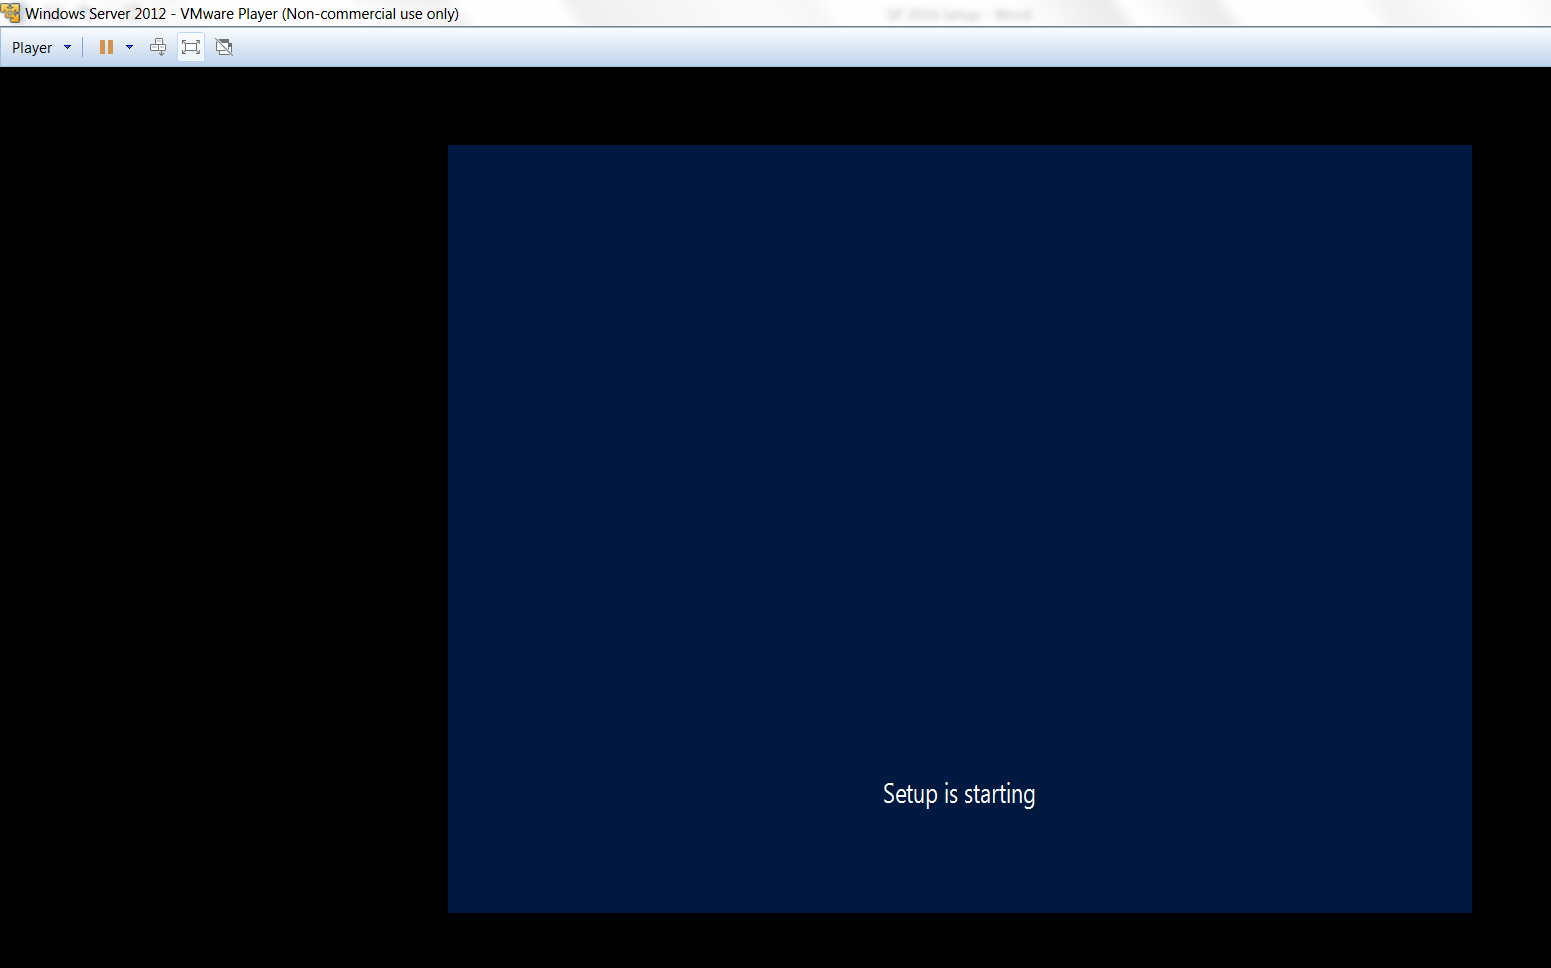 Windows Server 2012 setup is starting